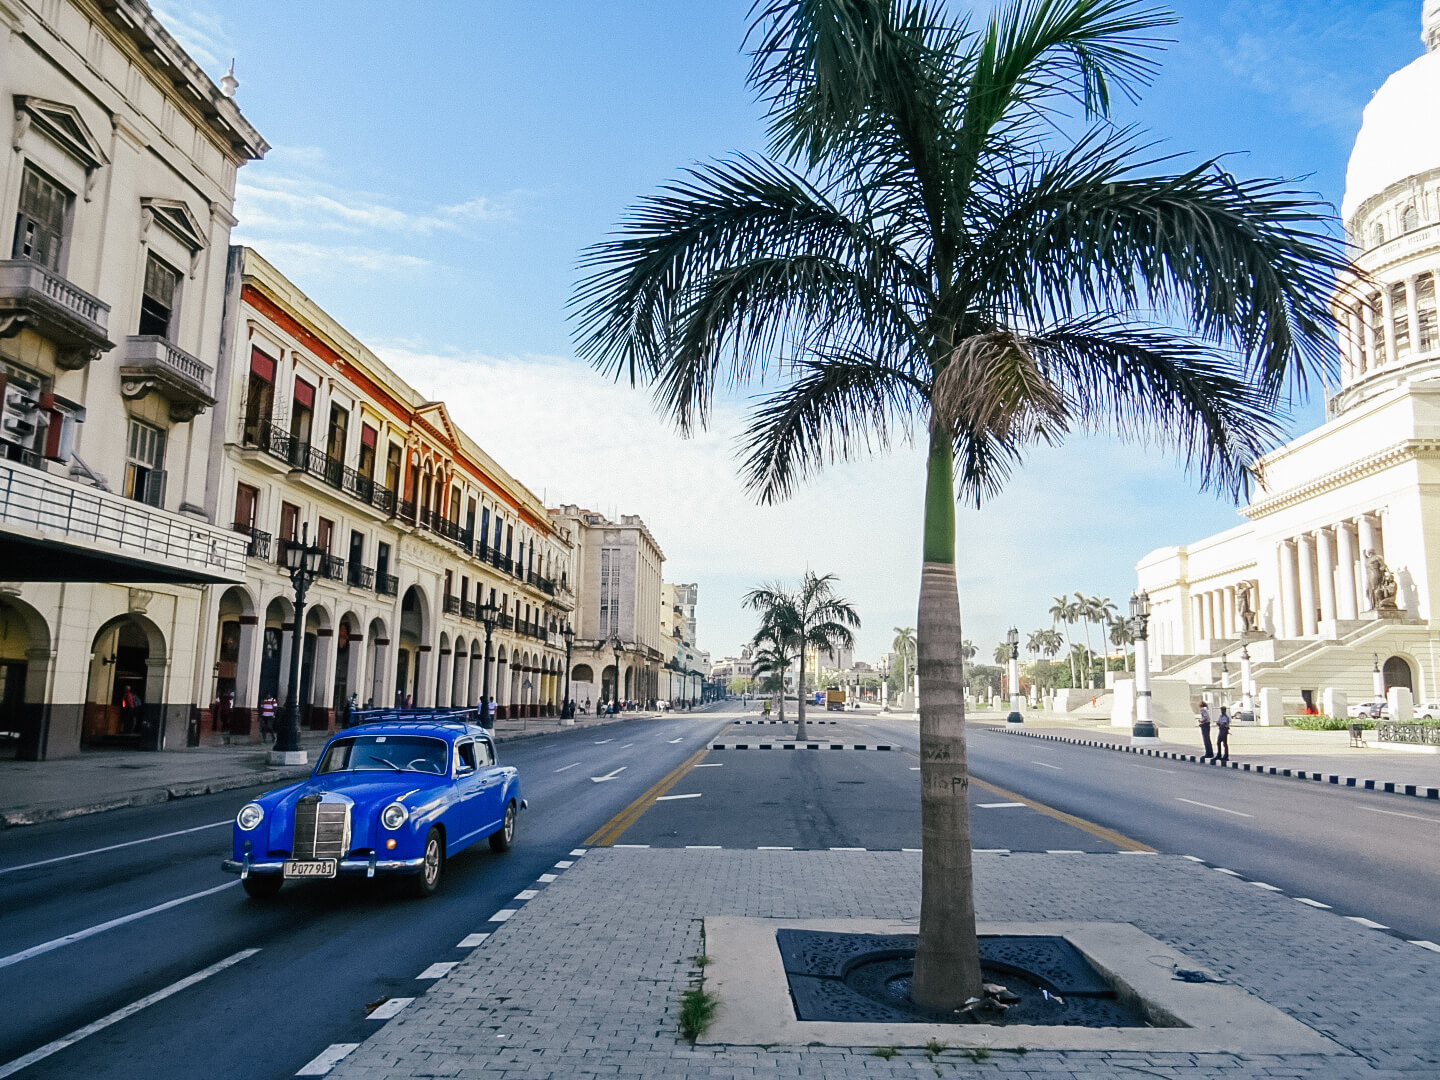 Postcard from Havana